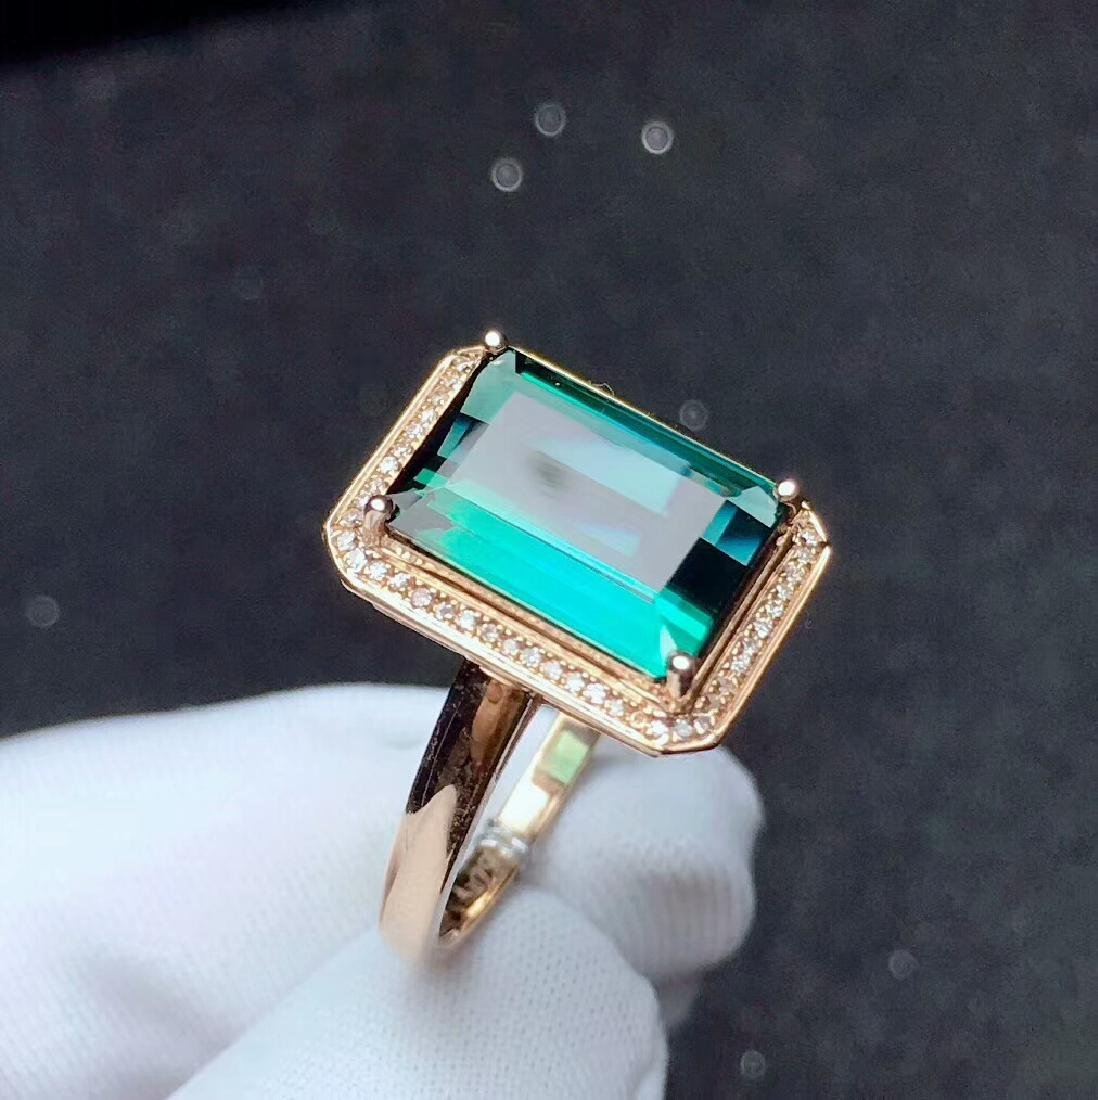 4ct TourmalineRing in 18kt Rose Gold - 5